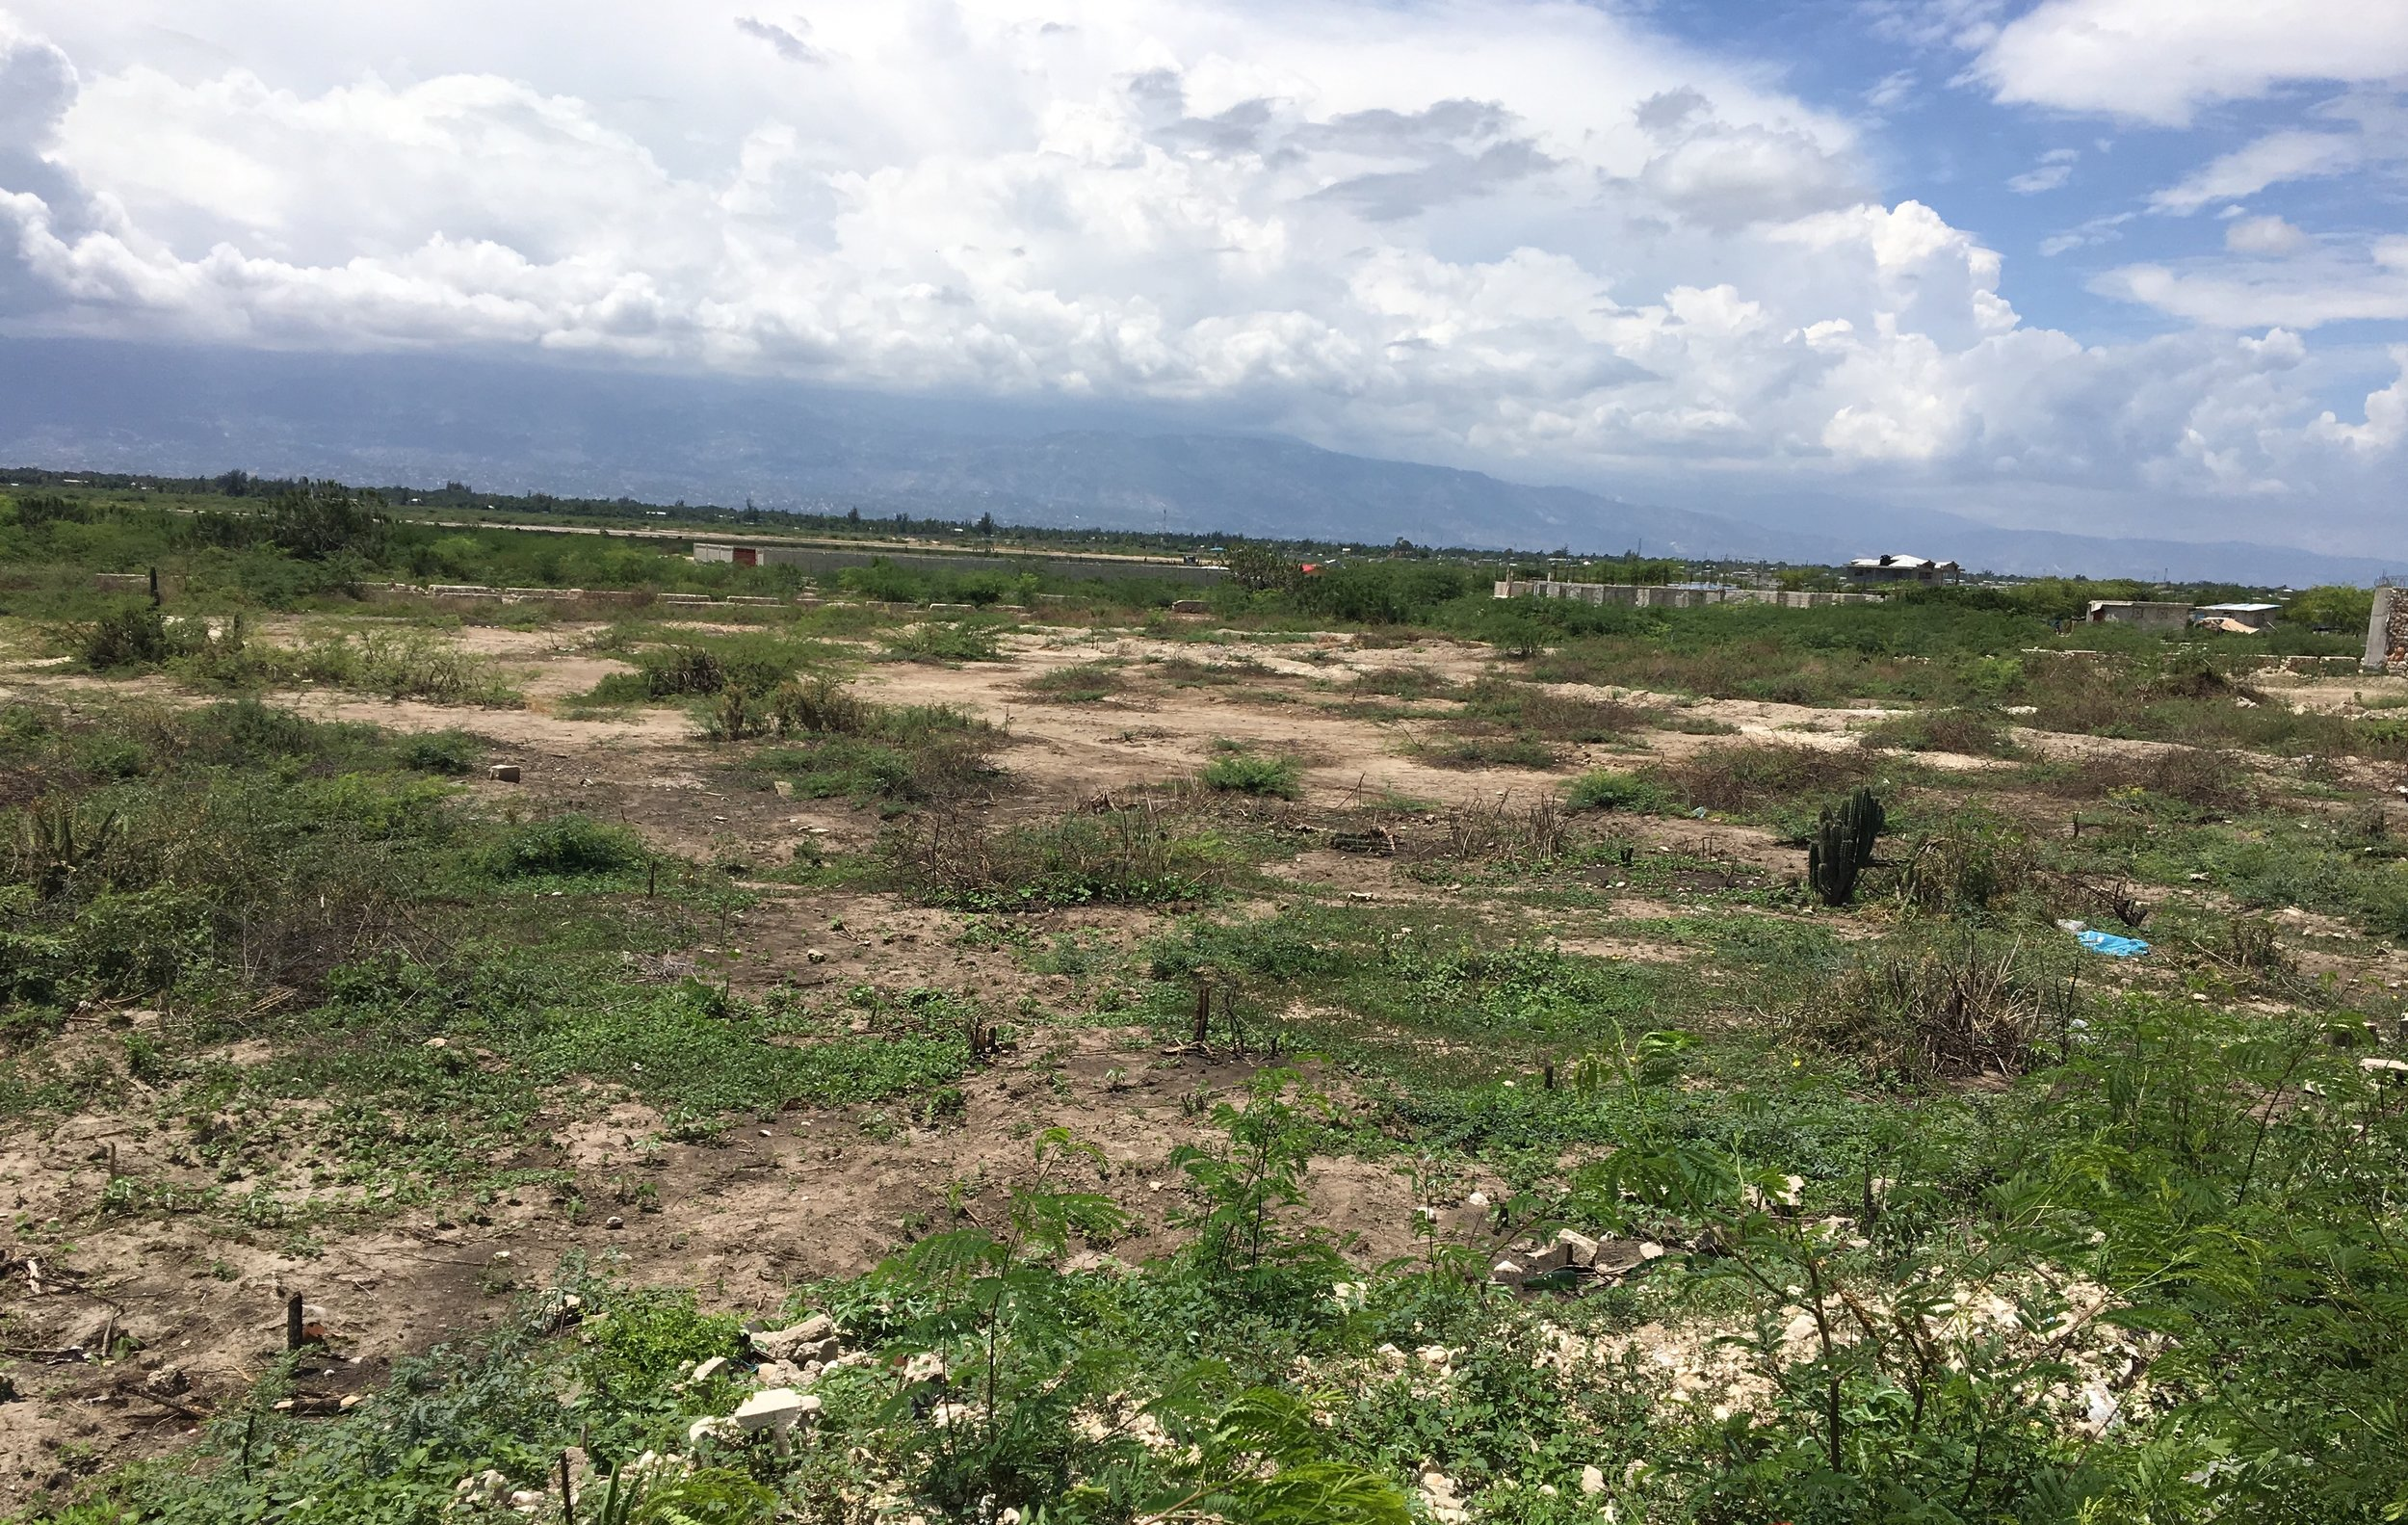 Kingdom Kids Homes property purchased for House of Hope in Cannaan, Haiti. (April 25, 2017)